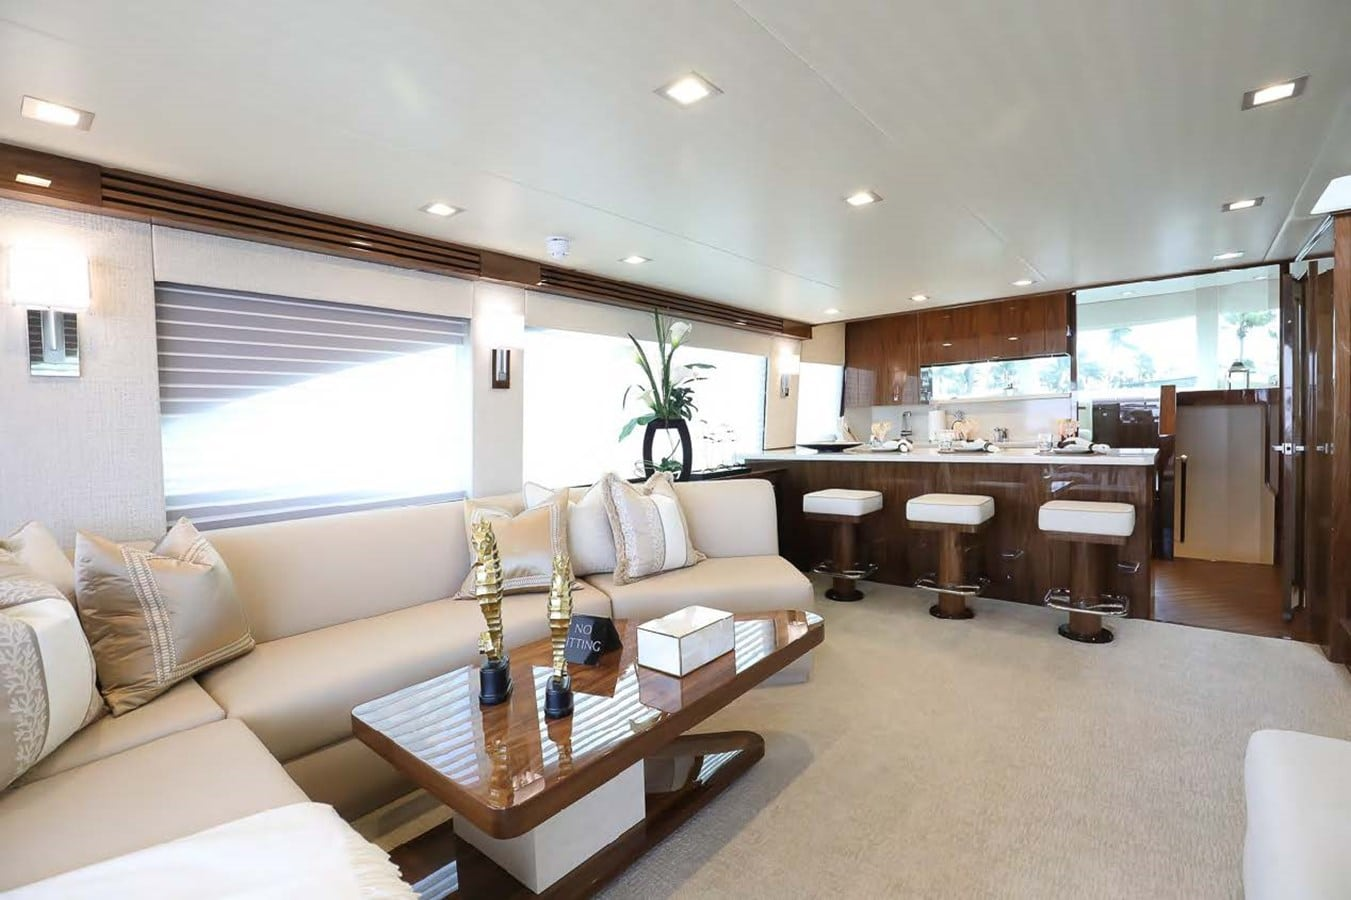 Viking motor yacht interior view